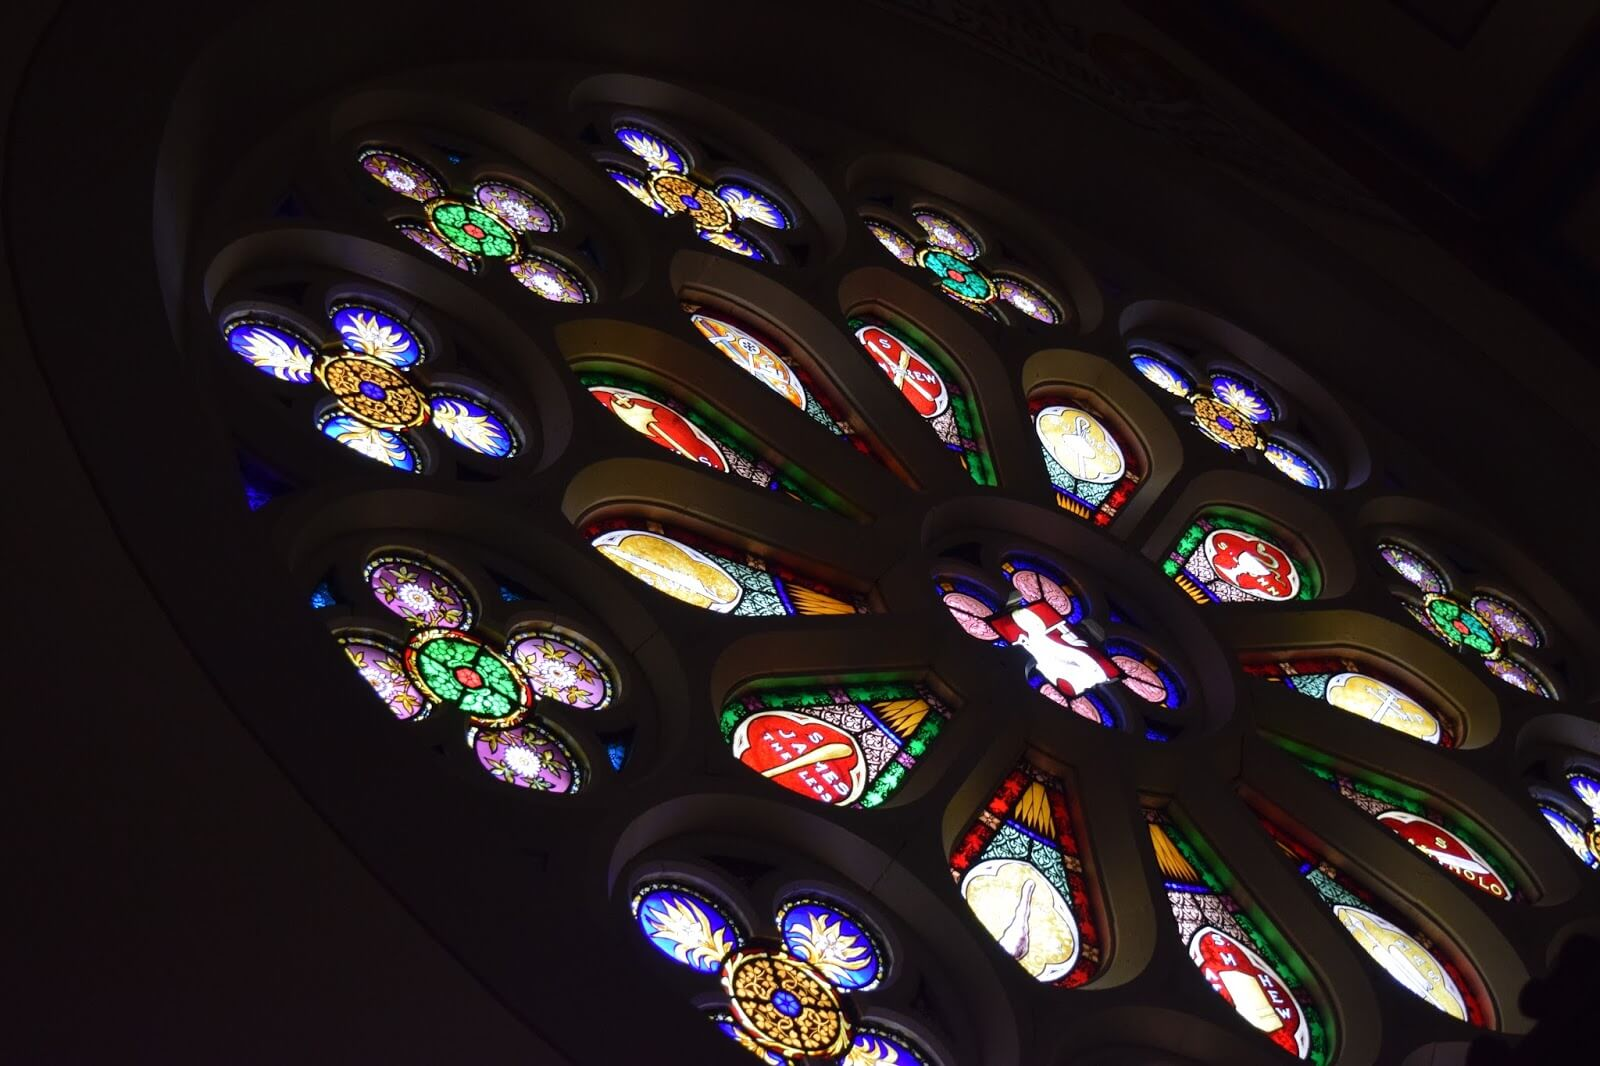 Rose window stained glass.